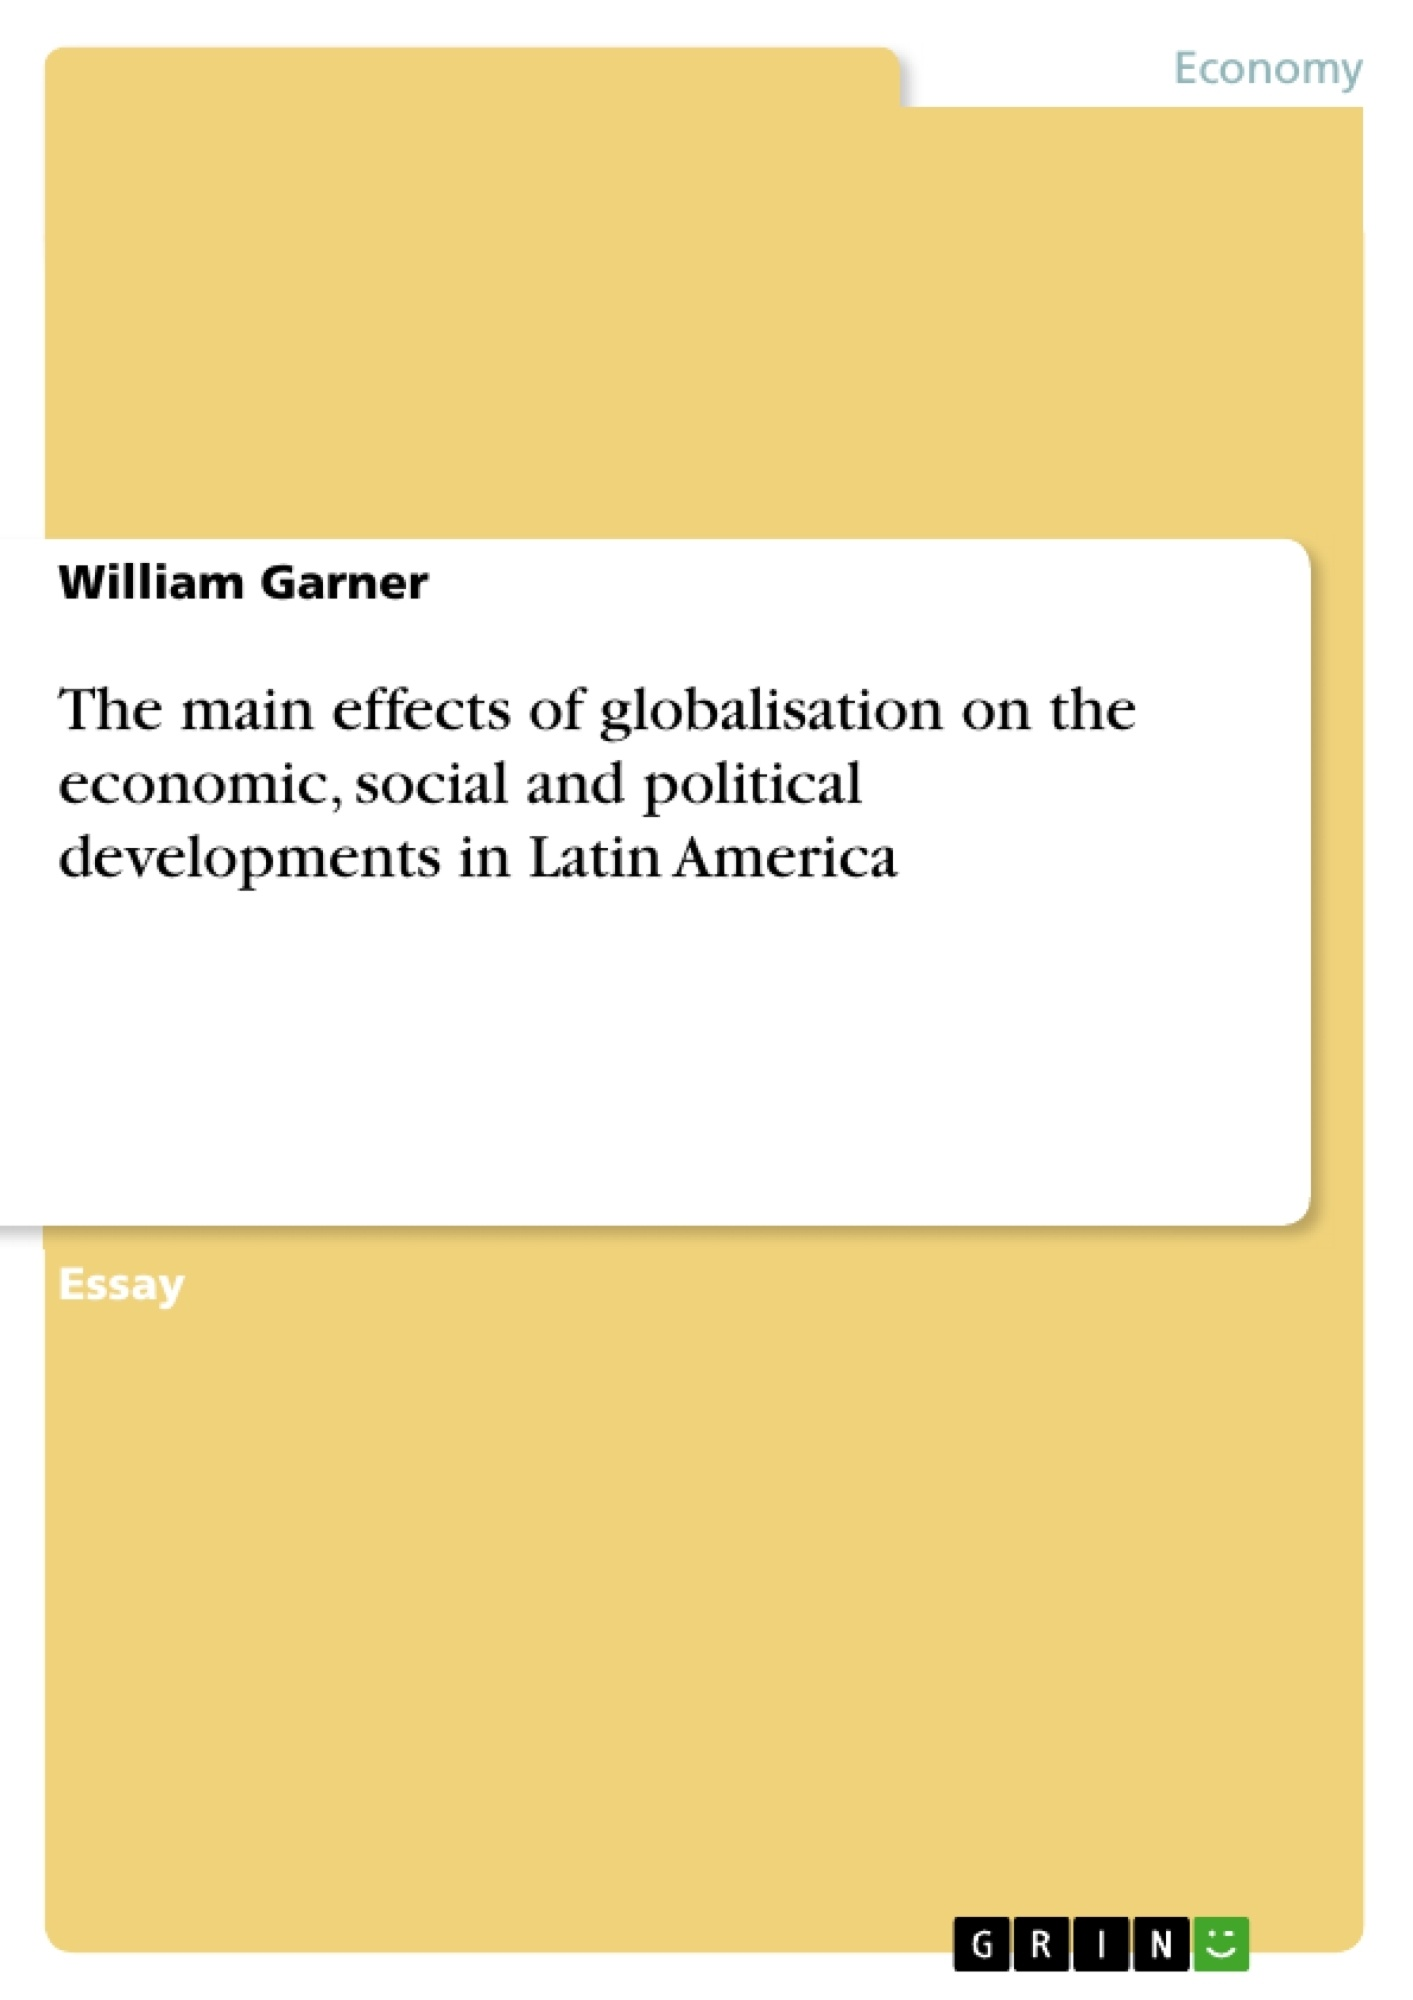 Title: The main effects of globalisation on the economic, social and political developments in Latin America